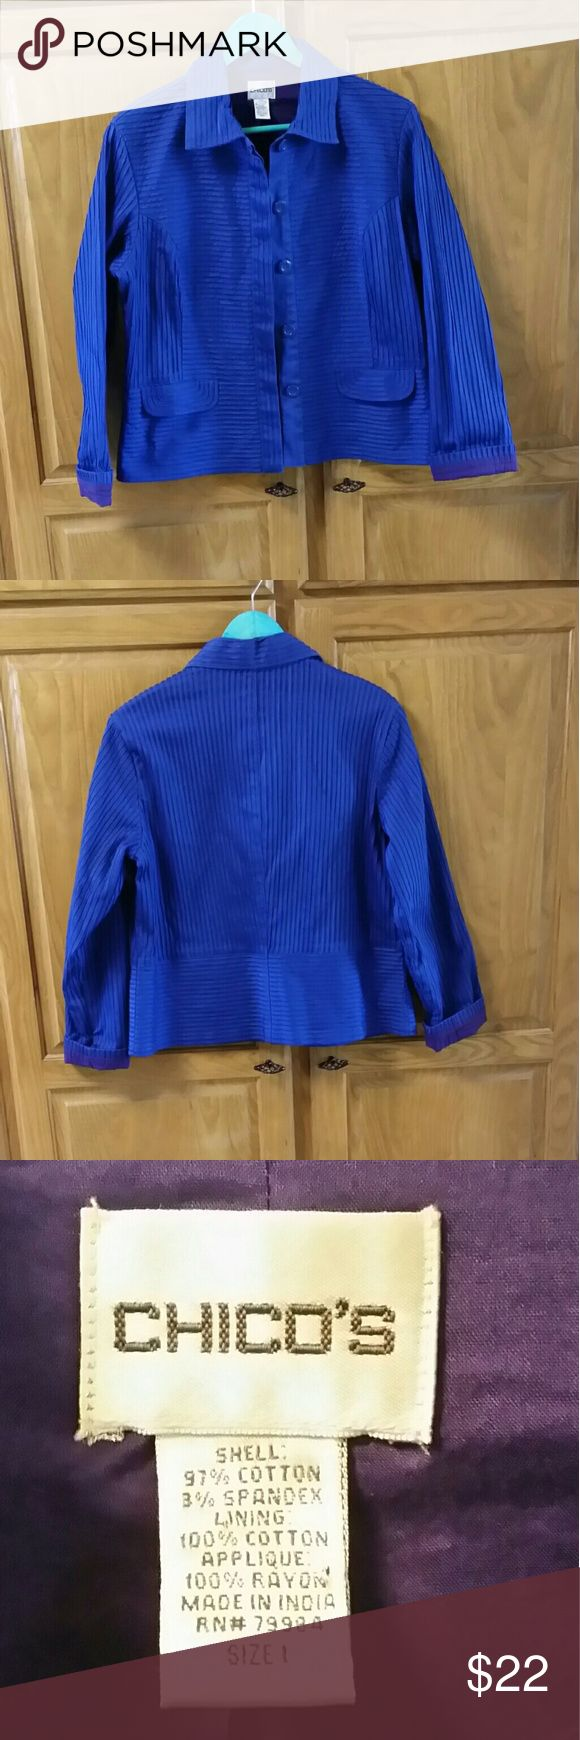 Chico's blazer jacket Size 1 This is a beautiful bright Royal Blue fully lined jacket blazer from Chico's.  It is a size 1.  It has five big buttons down the front and two faux pockets on the front.  No actual pockets.  EXCELLENT USED CONDITION  Shell 97% Cotton             3% Spandex Lining 100% Cotton Applique 100% Rayon Chico's Jackets & Coats Blazers